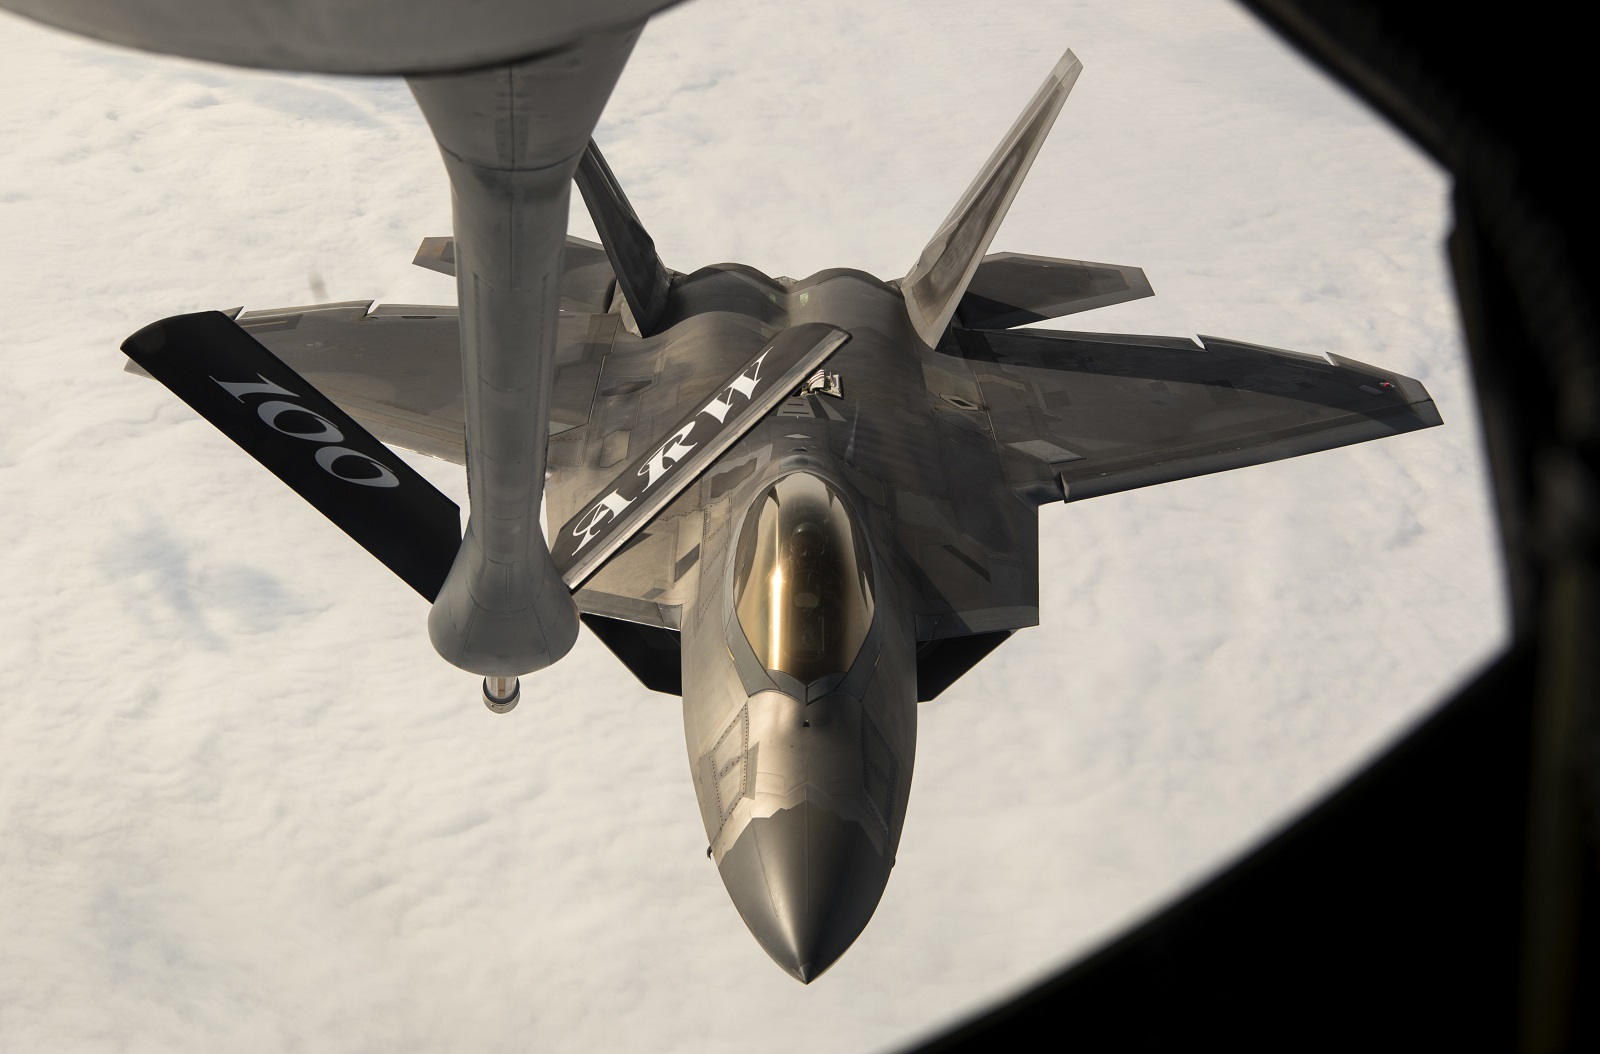 Japan's New Stealth Fighter: A Hybrid Mix of the F-22 and F-35?